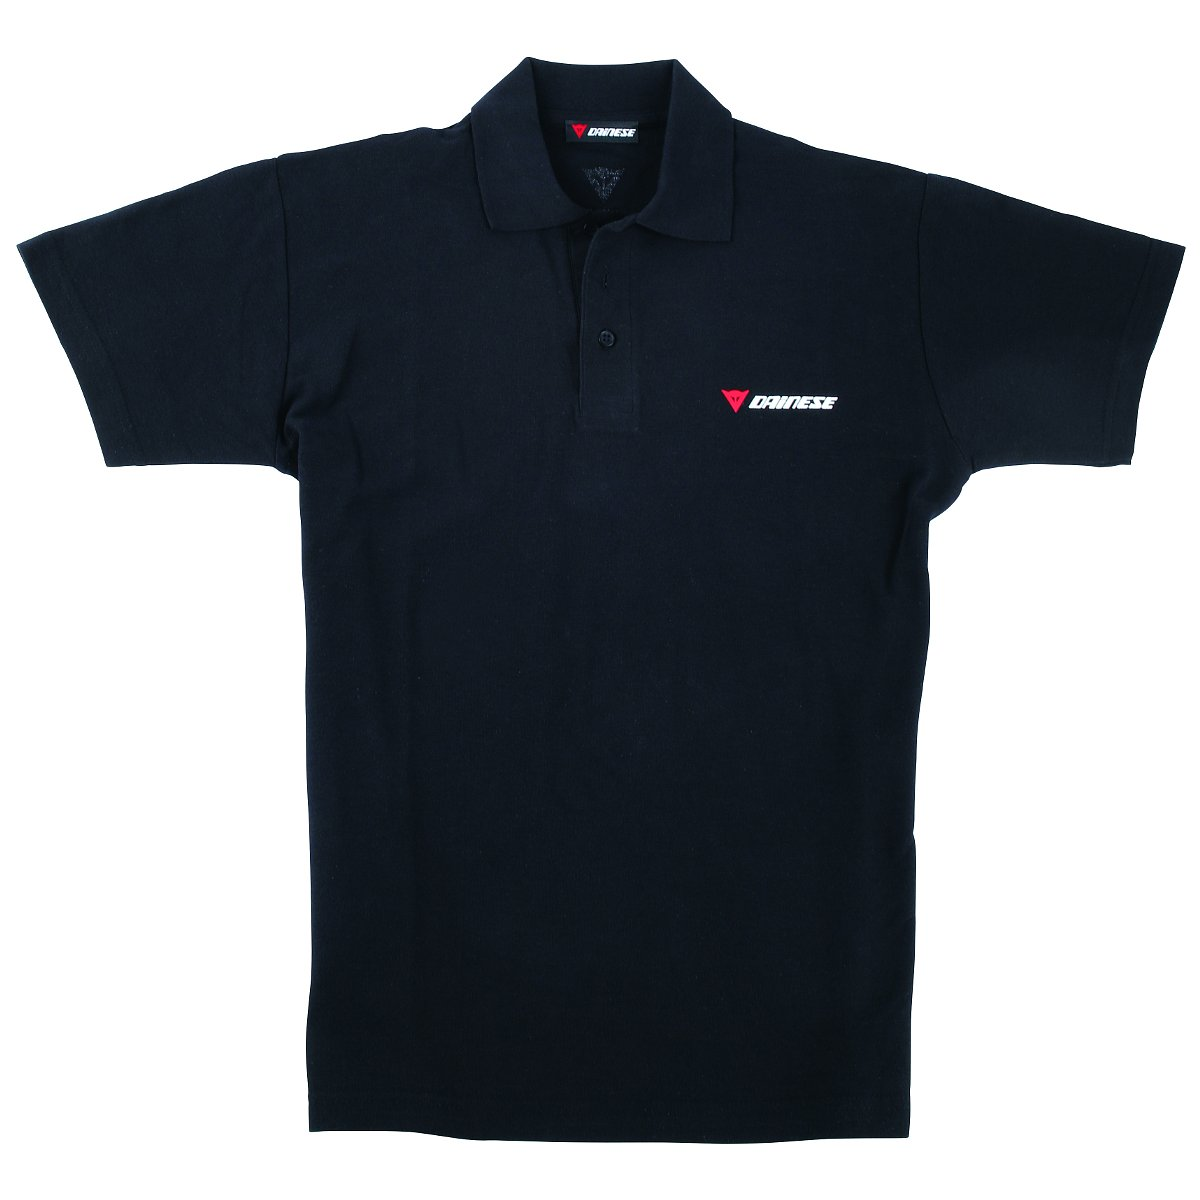 D-Polo Dainese nero